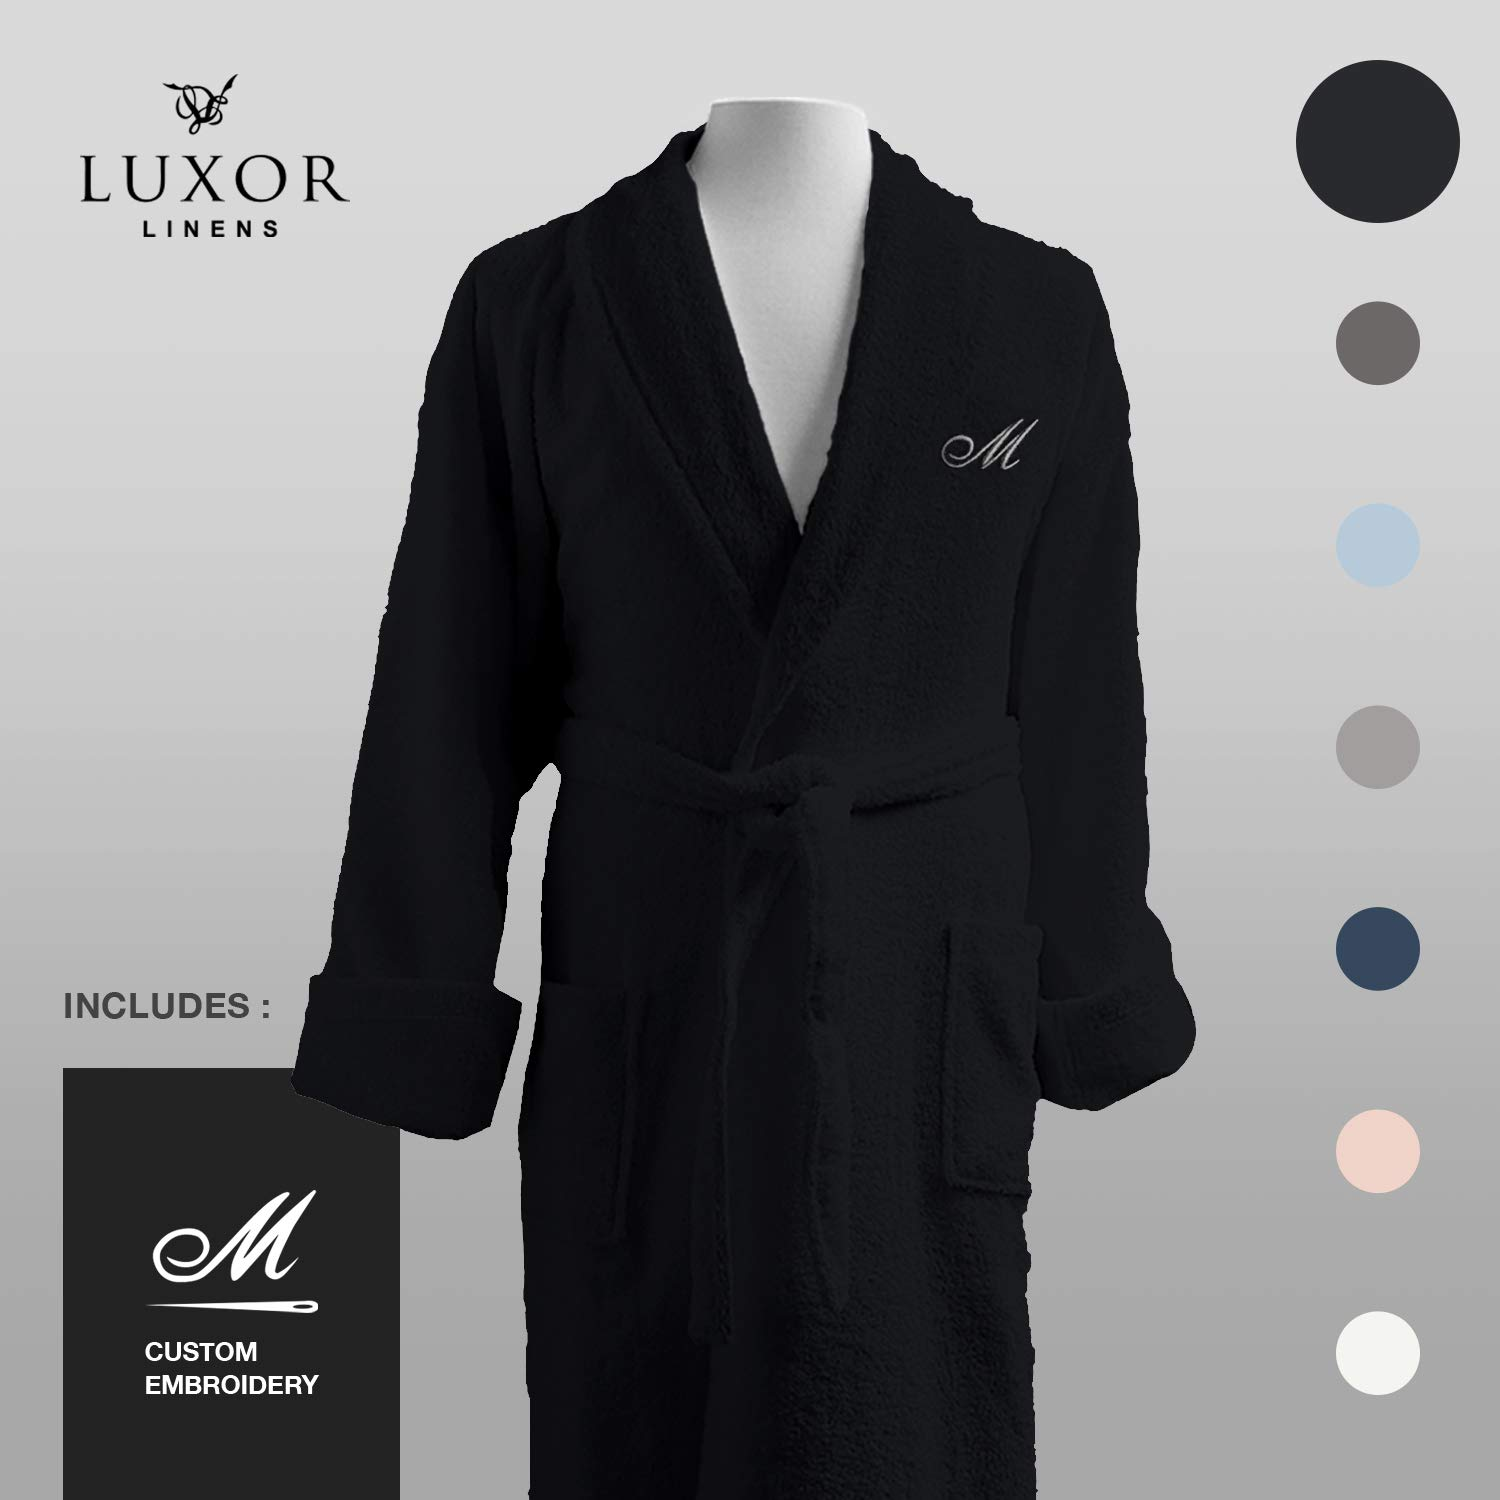 Luxor Linens - Terry Cloth Bathrobes - 100% Egyptian Cotton Bathrobe- Luxurious, Soft, Plush Durable Robe (Black, Custom)